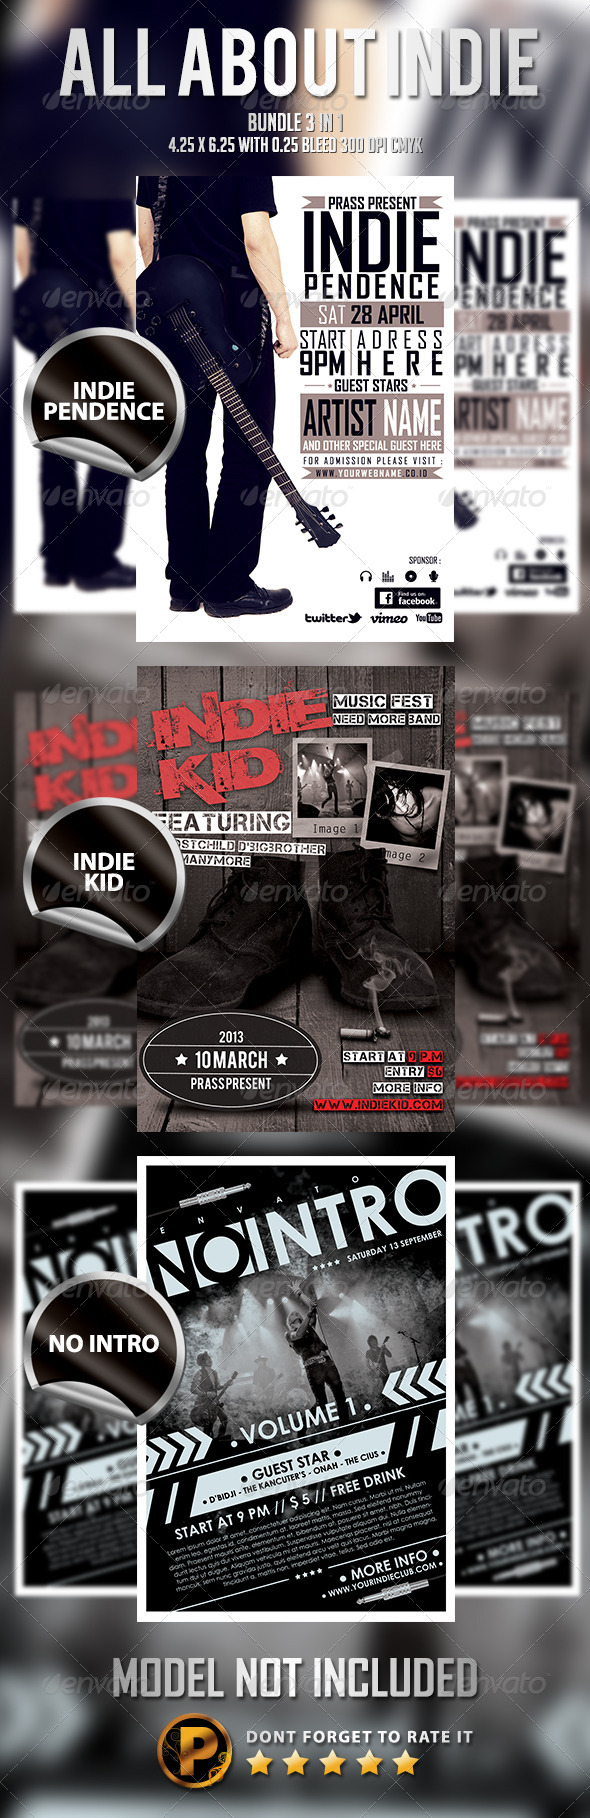 GraphicRiver All About Indie Bundle 3 in 1 6082784